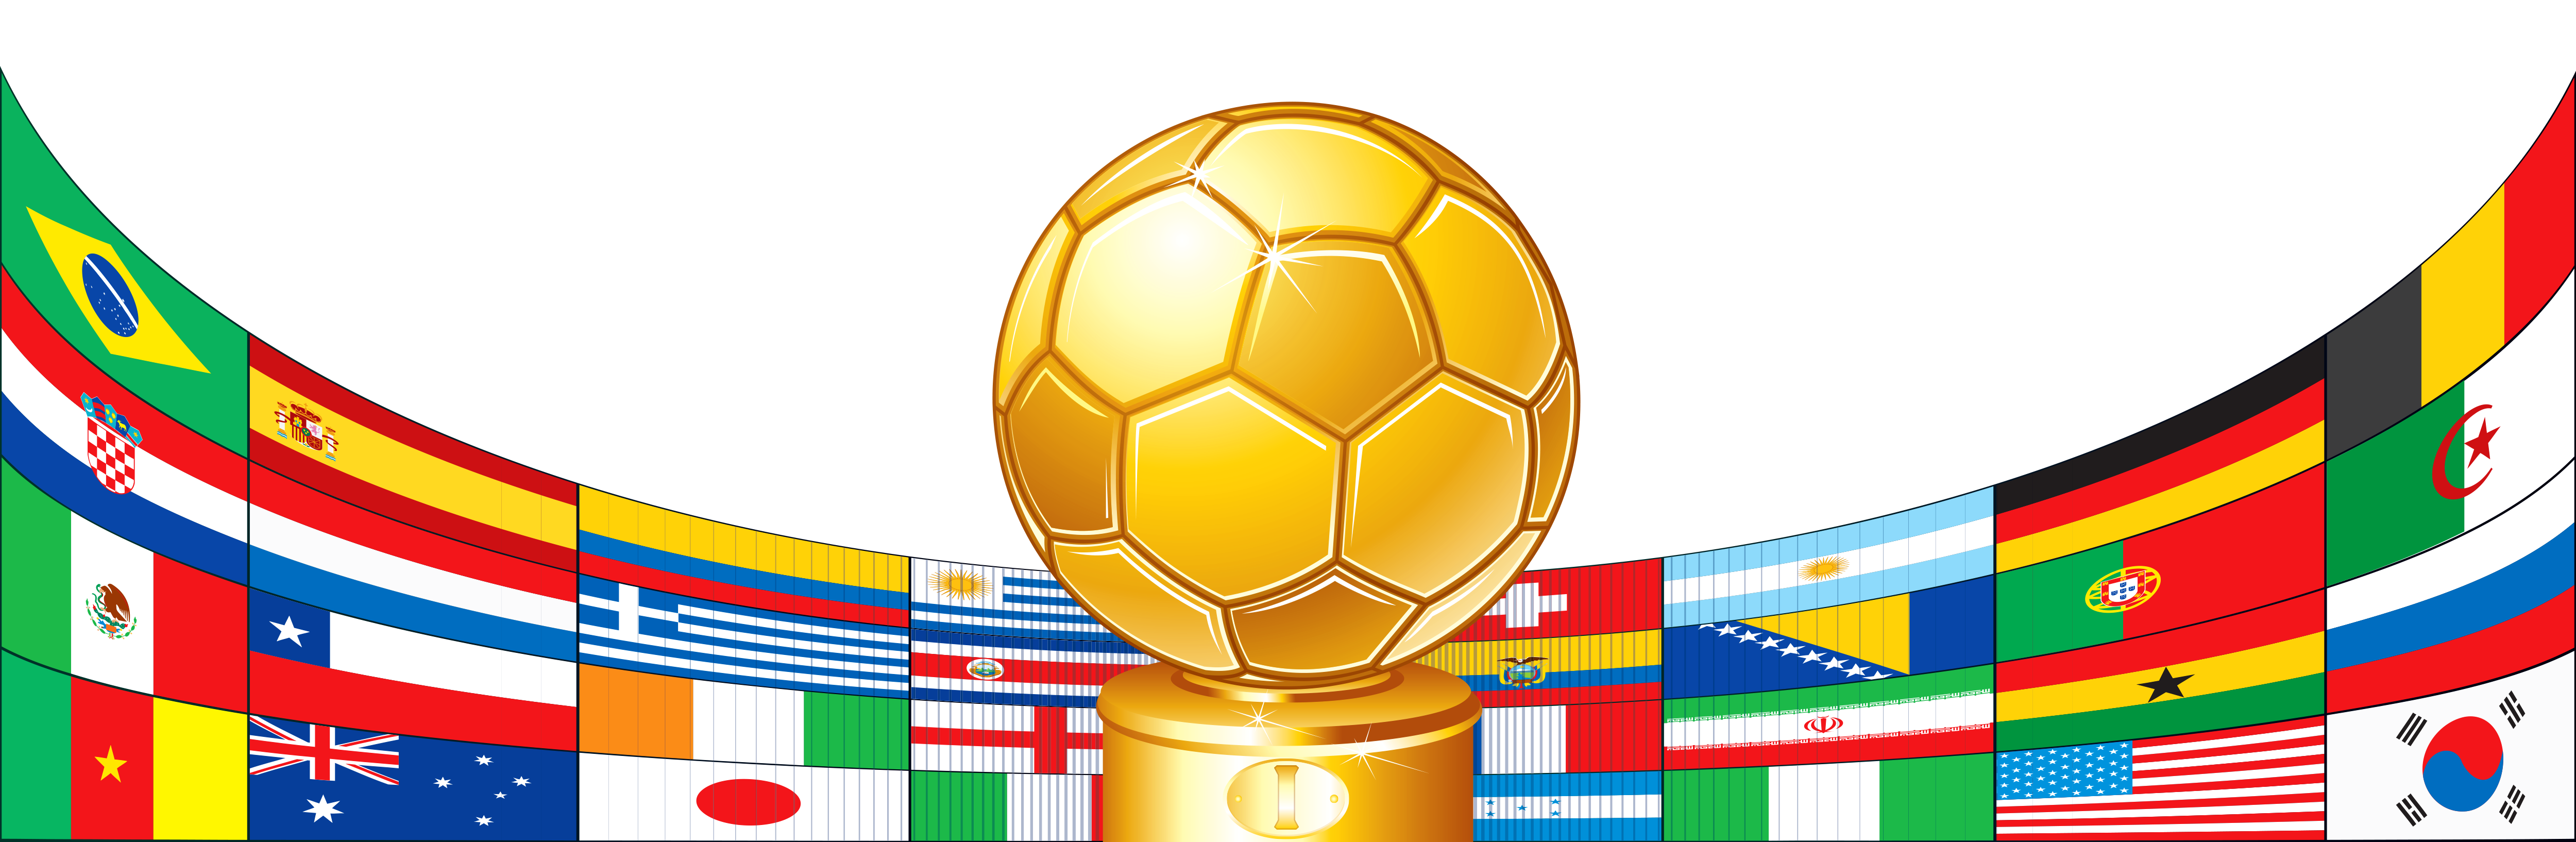 World cup 2014 clipart.